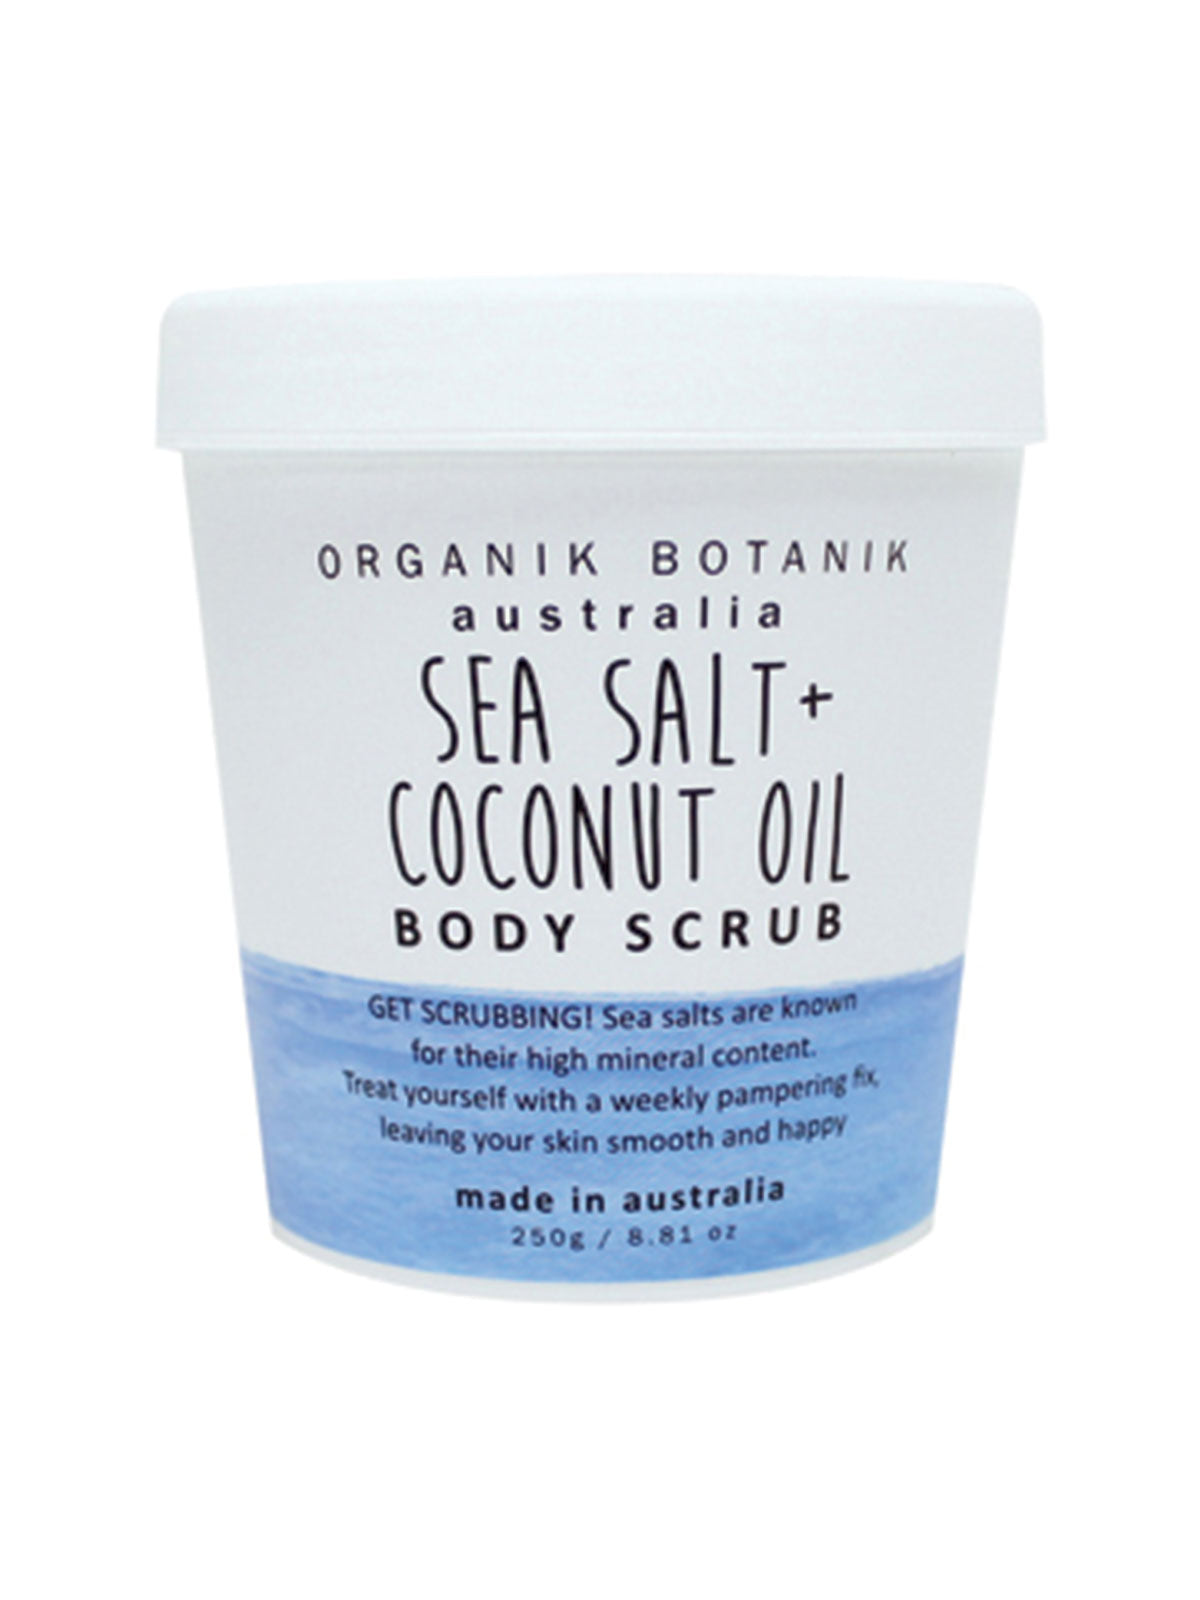 SEA SALT & COCONUT OIL BODY SCRUB